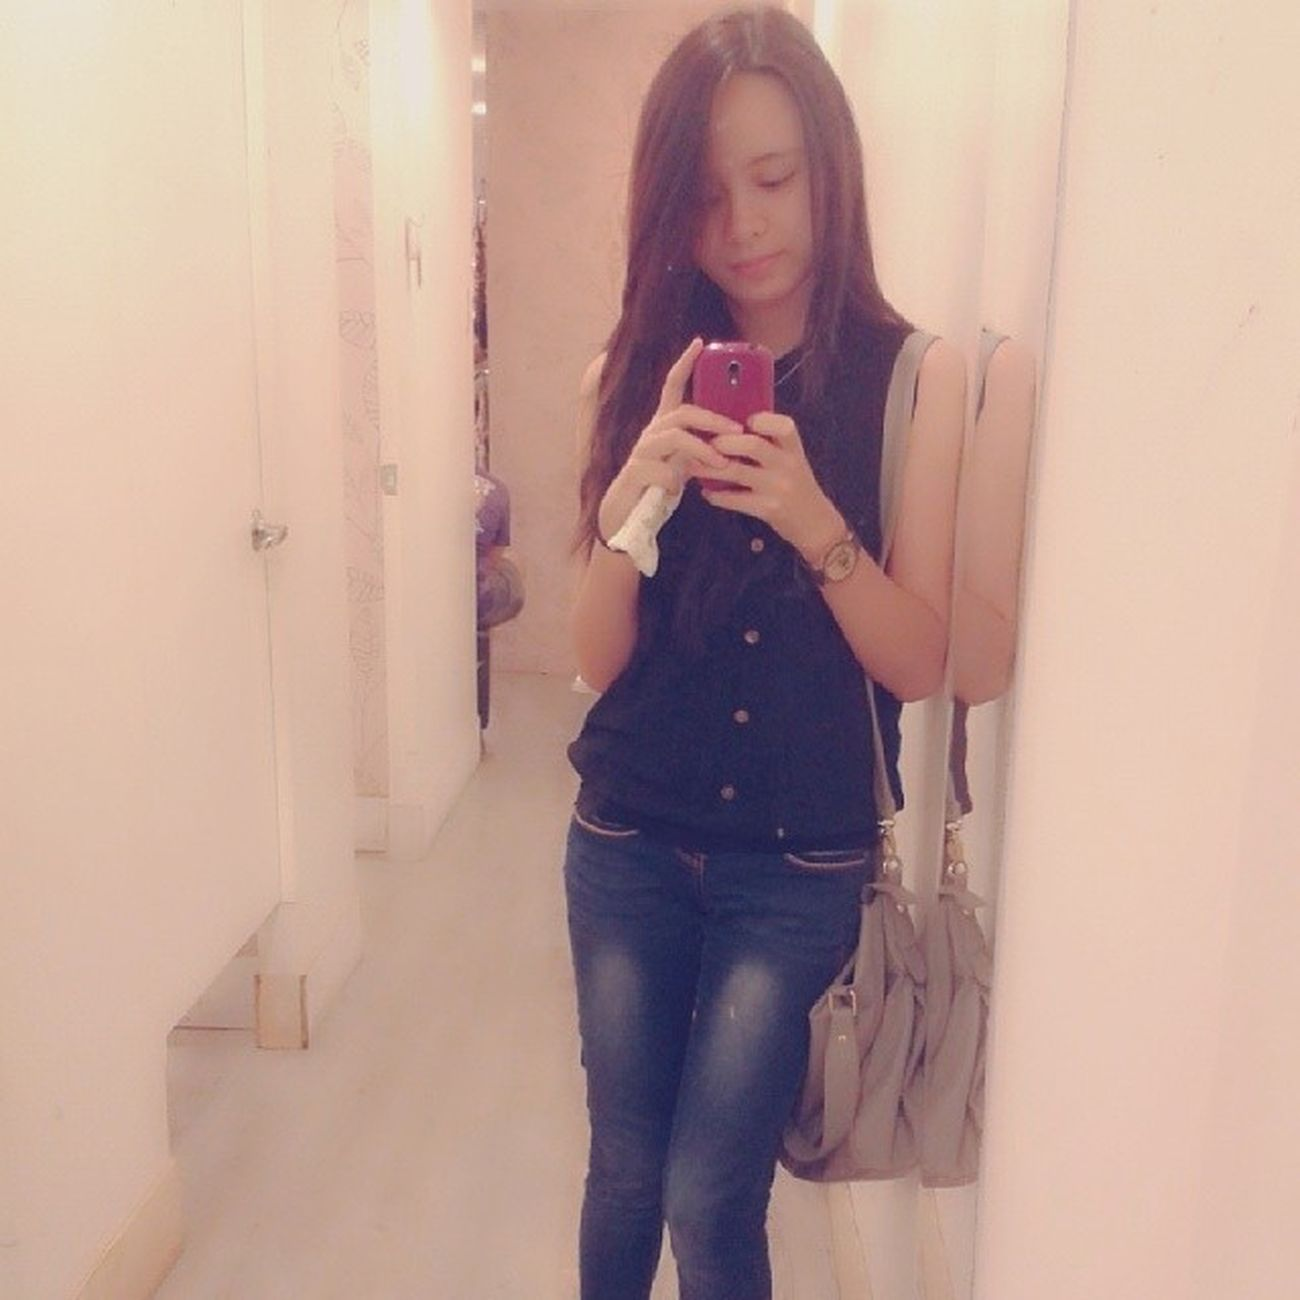 mirror mirror on the wall tell me, am i that hard to be loved? :) Selpiieeeee Black POTD Mirror rob wednesday